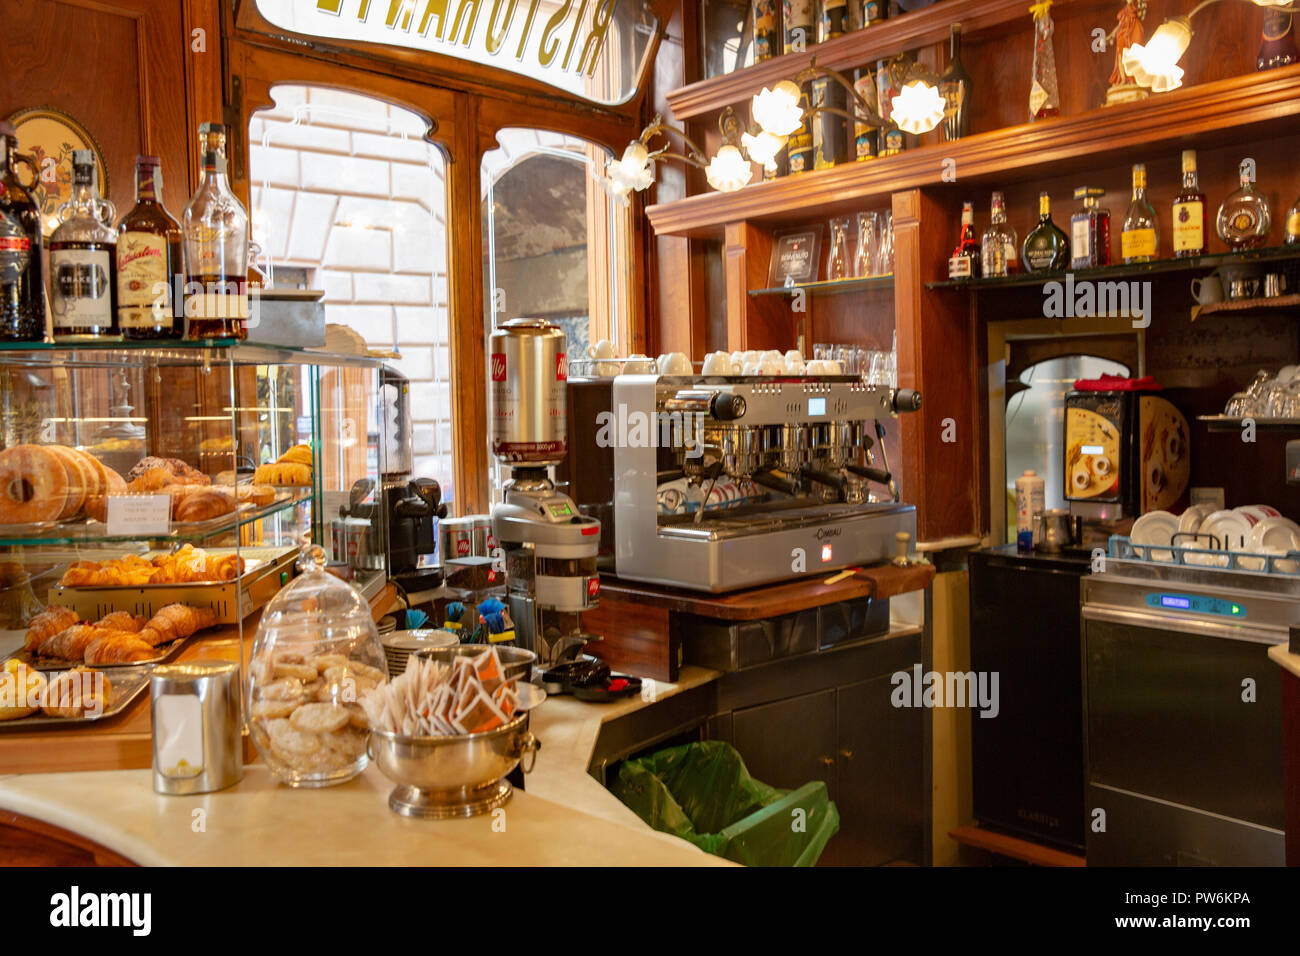 Italian Cafe Interior High Resolution Stock Photography And Images Alamy